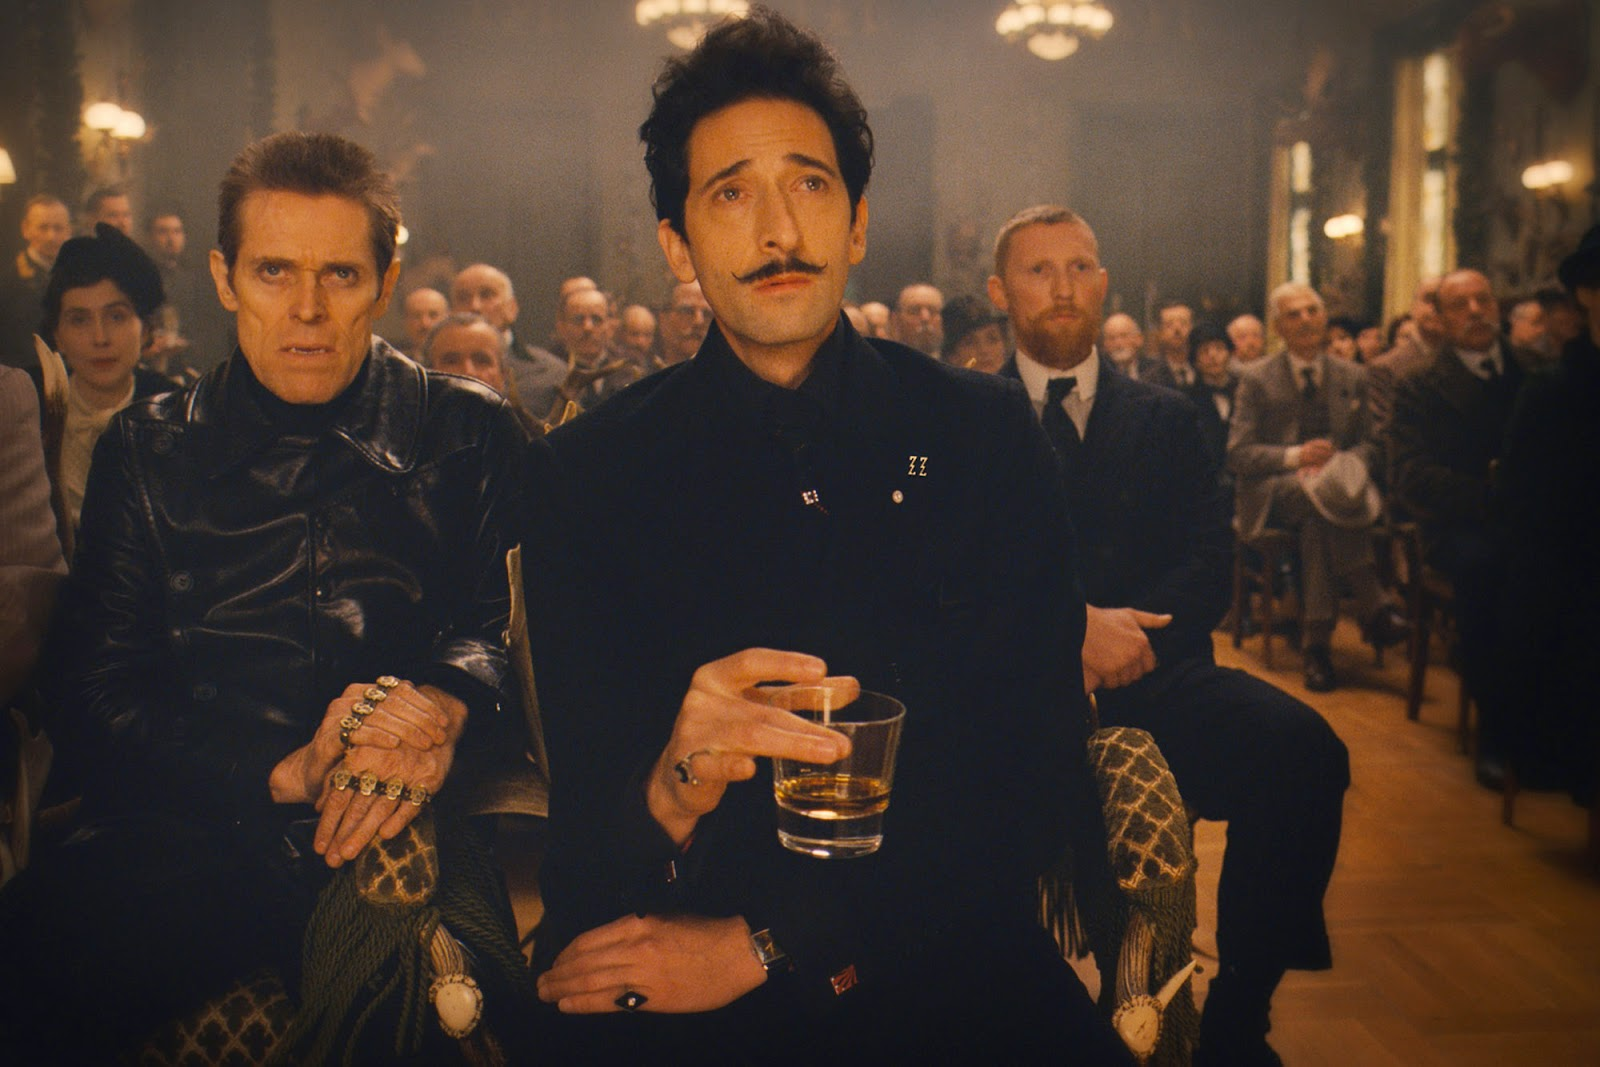 Willem Dafoe as Jopling and Adrien Brody as Dmitri, in The Grand Budapest Hotel (2014), Directed by Wes Anderson